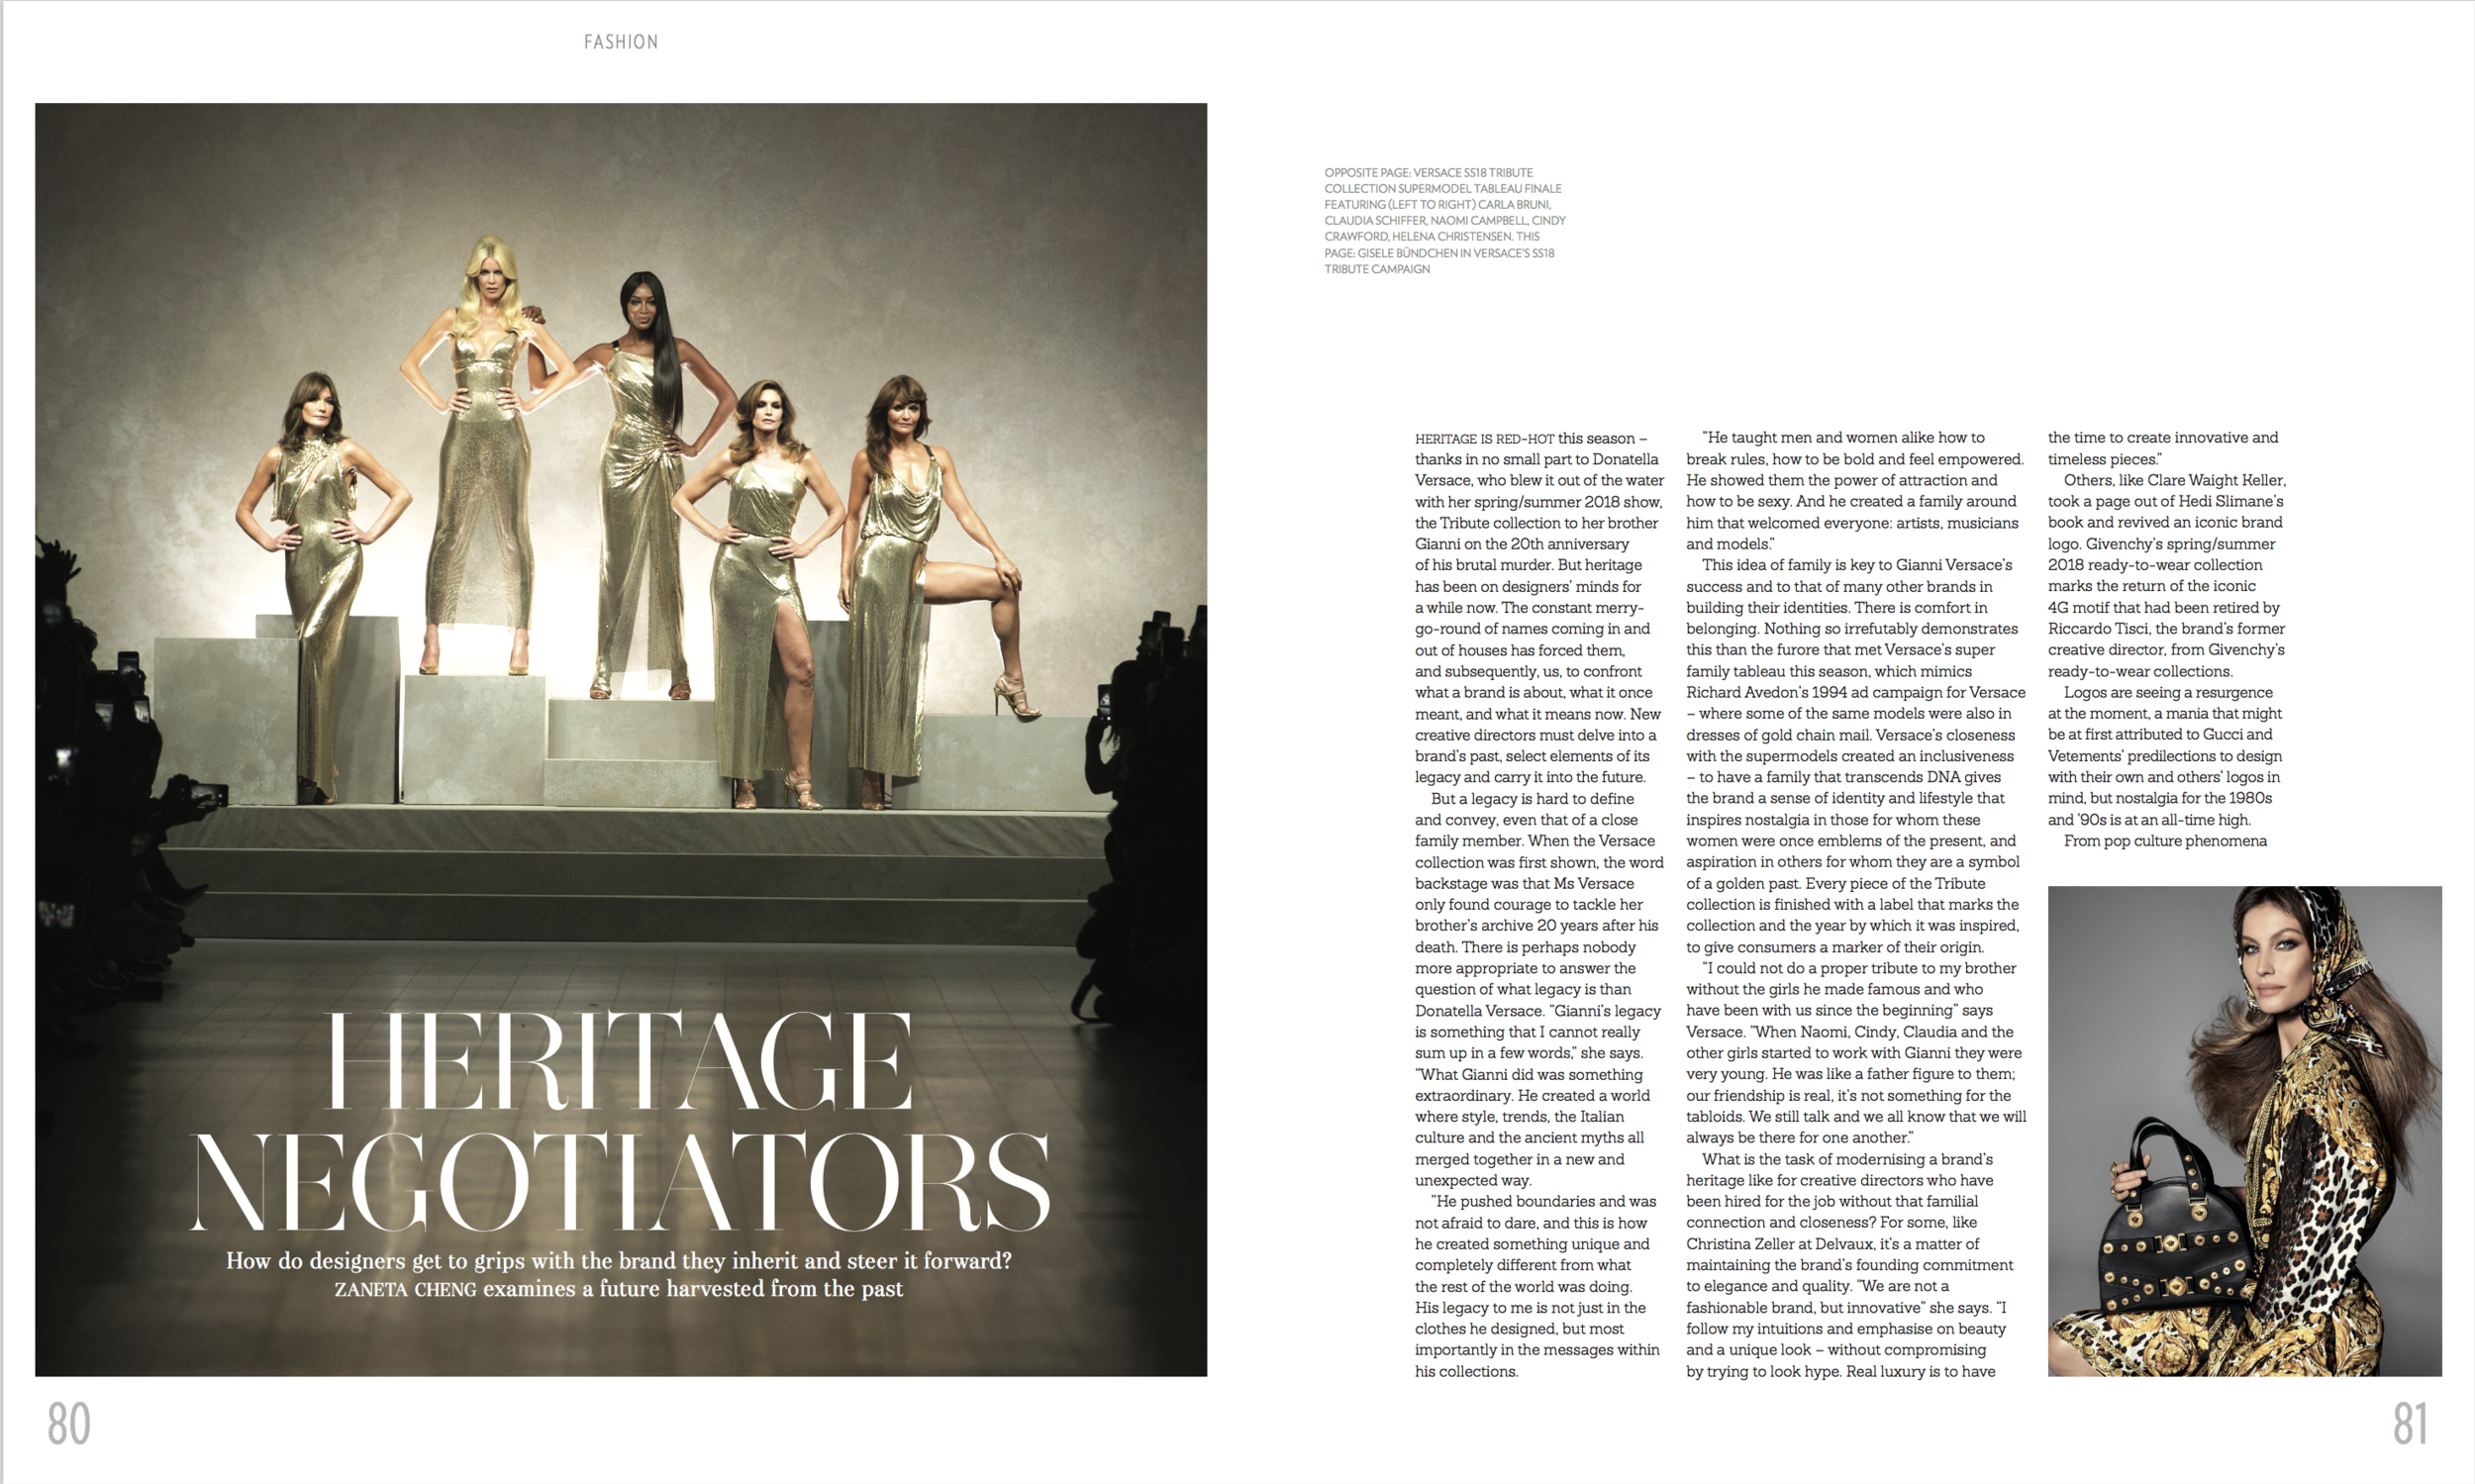 Heritage and logomania in Fashion Prestige Hong Kong Zaneta Cheng 1:3.png